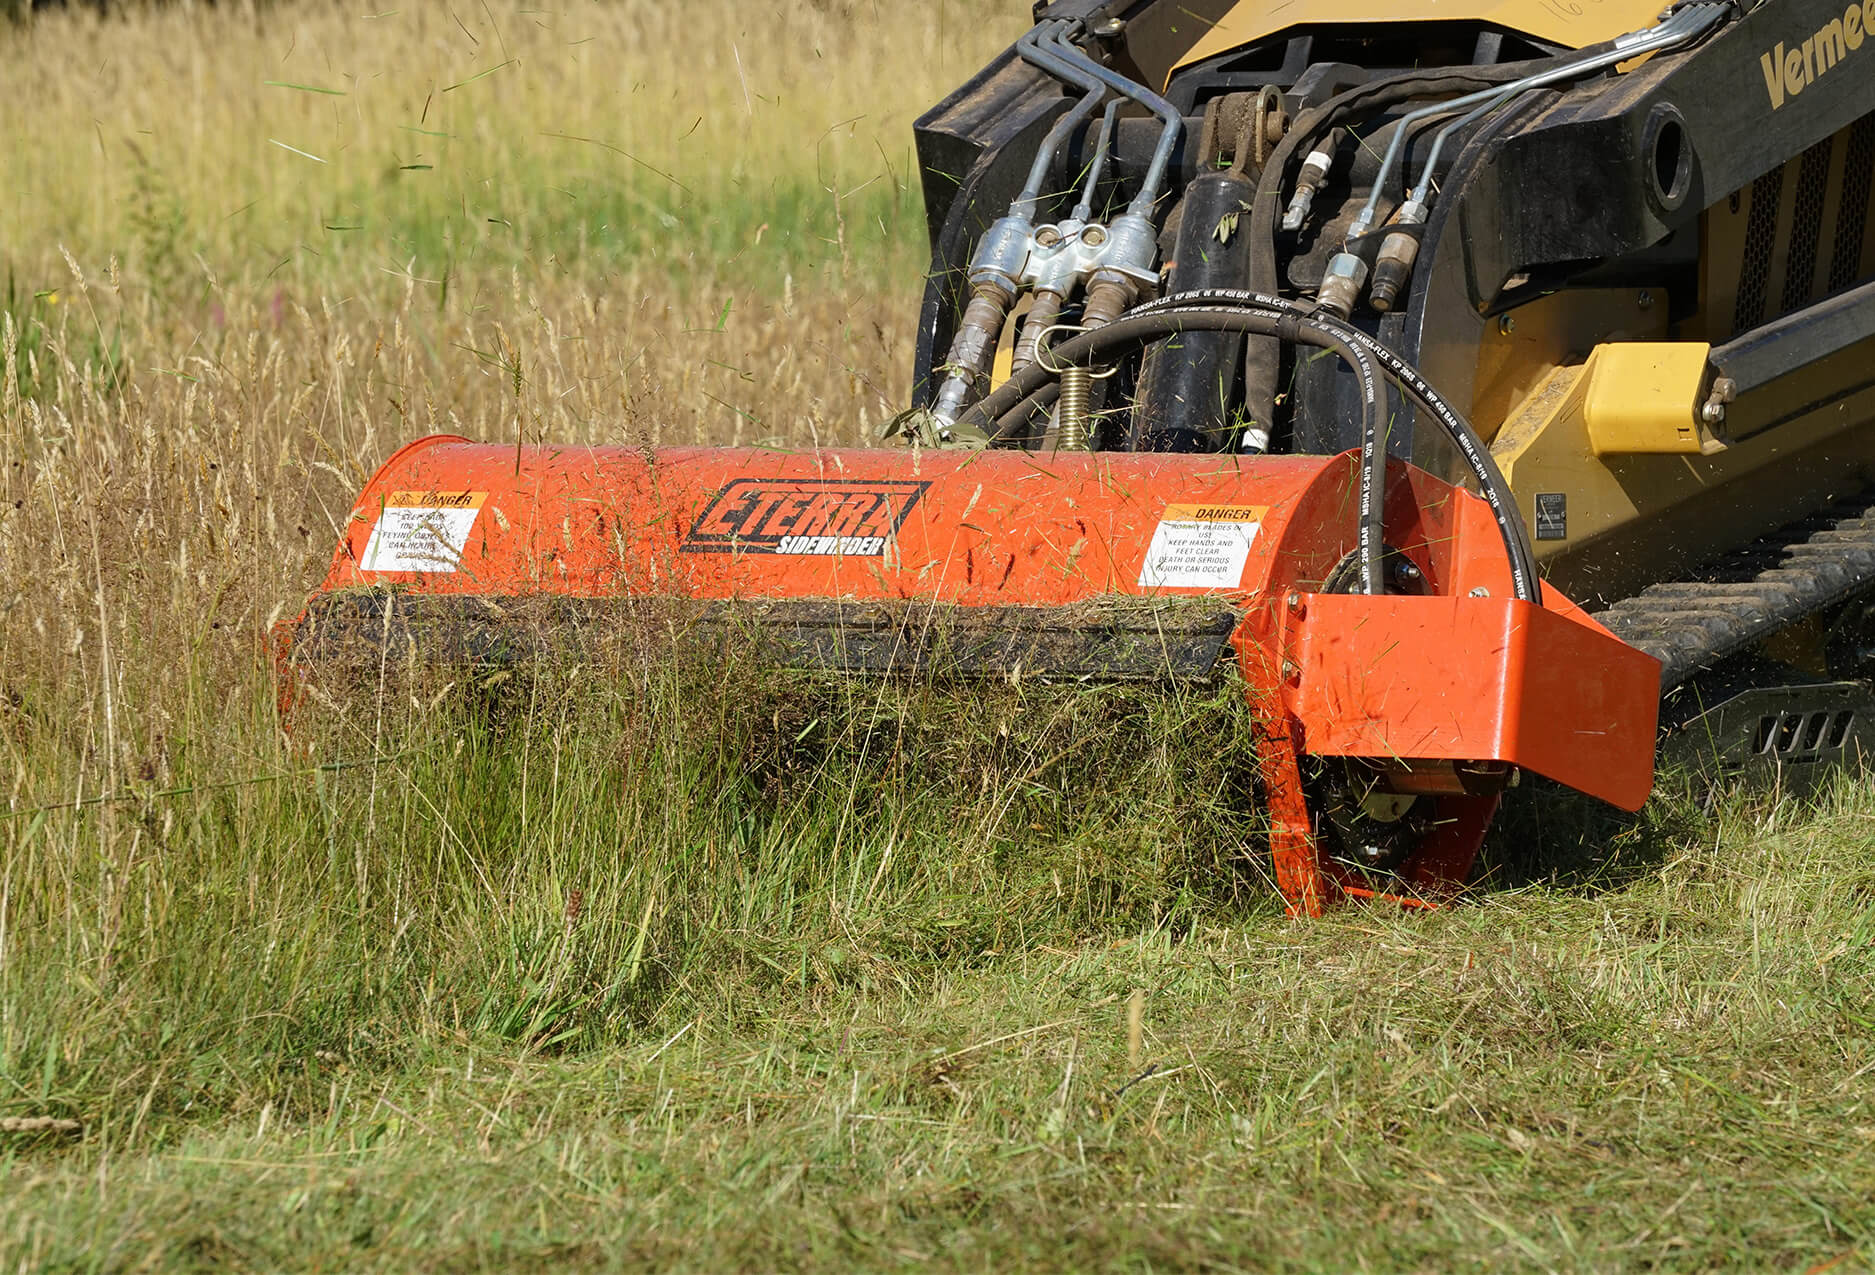 Eterra Sidewinder mini Skid Steer flail mower mowing grass close up